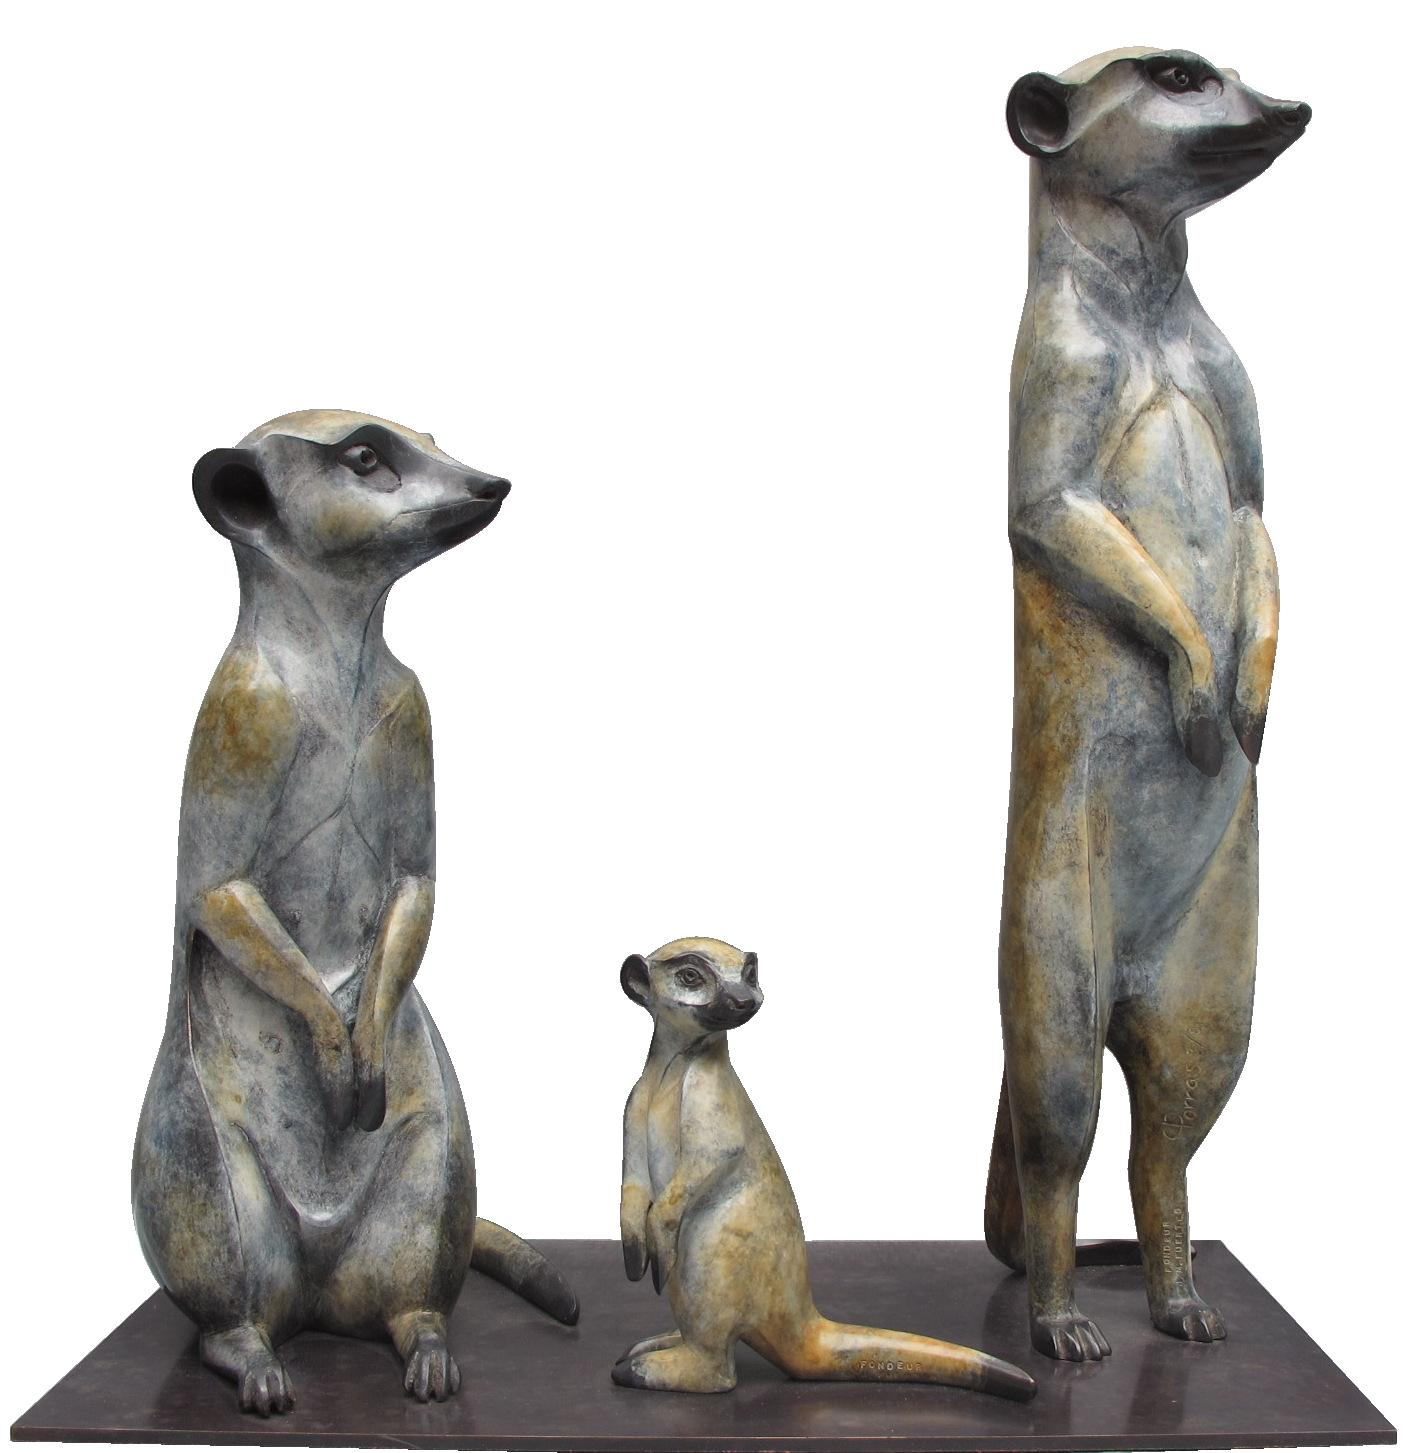 Suricates – Chantal Porras